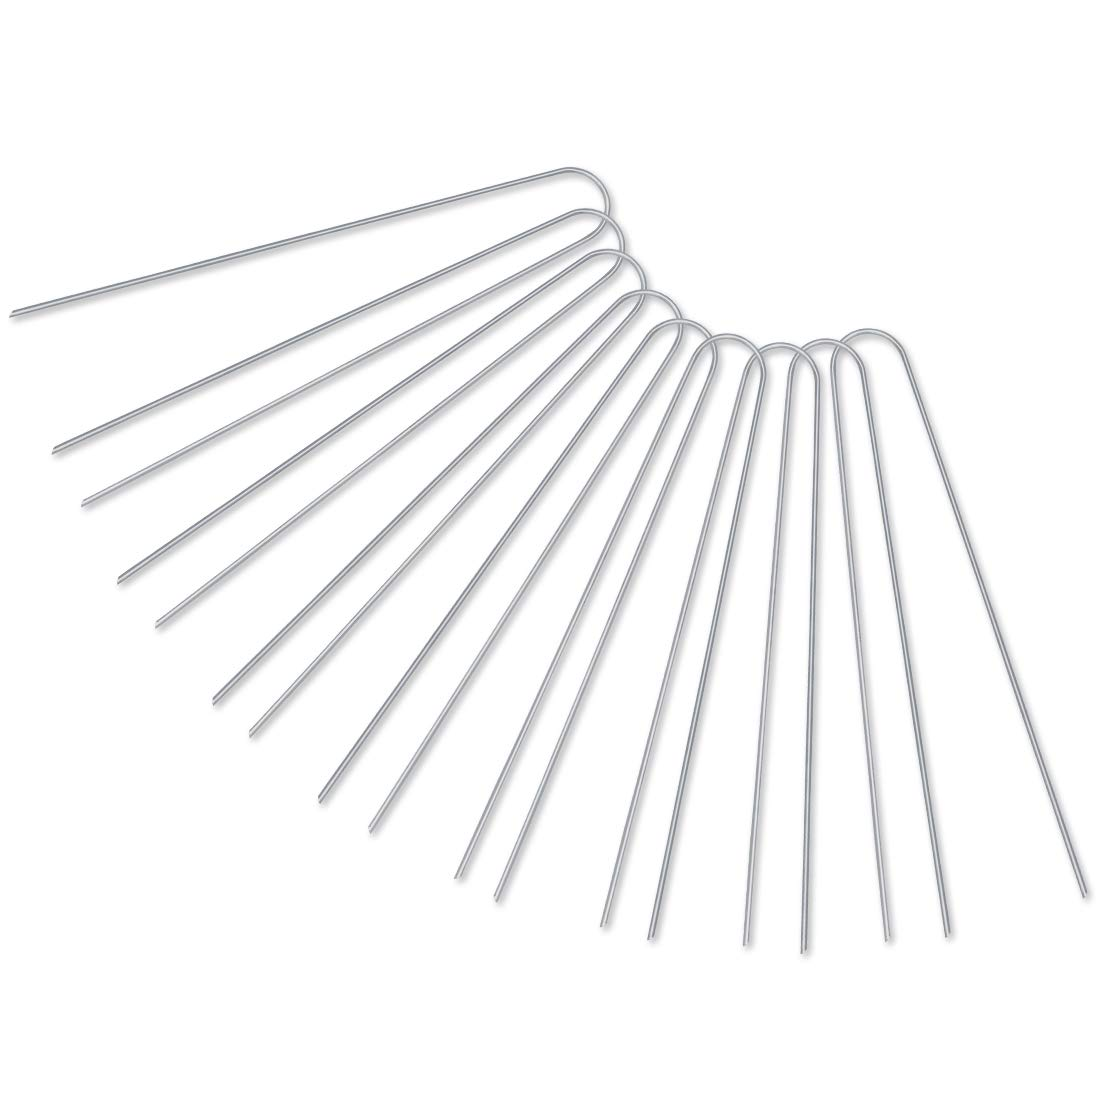 [U-Shaped] 50-Pack 12'' Heavy Duty 11 Gauge Galvanized Steel Garden Stakes Staples Securing Pegs for Securing Weed Fabric Landscape Fabric Netting Ground Sheets and Fleece